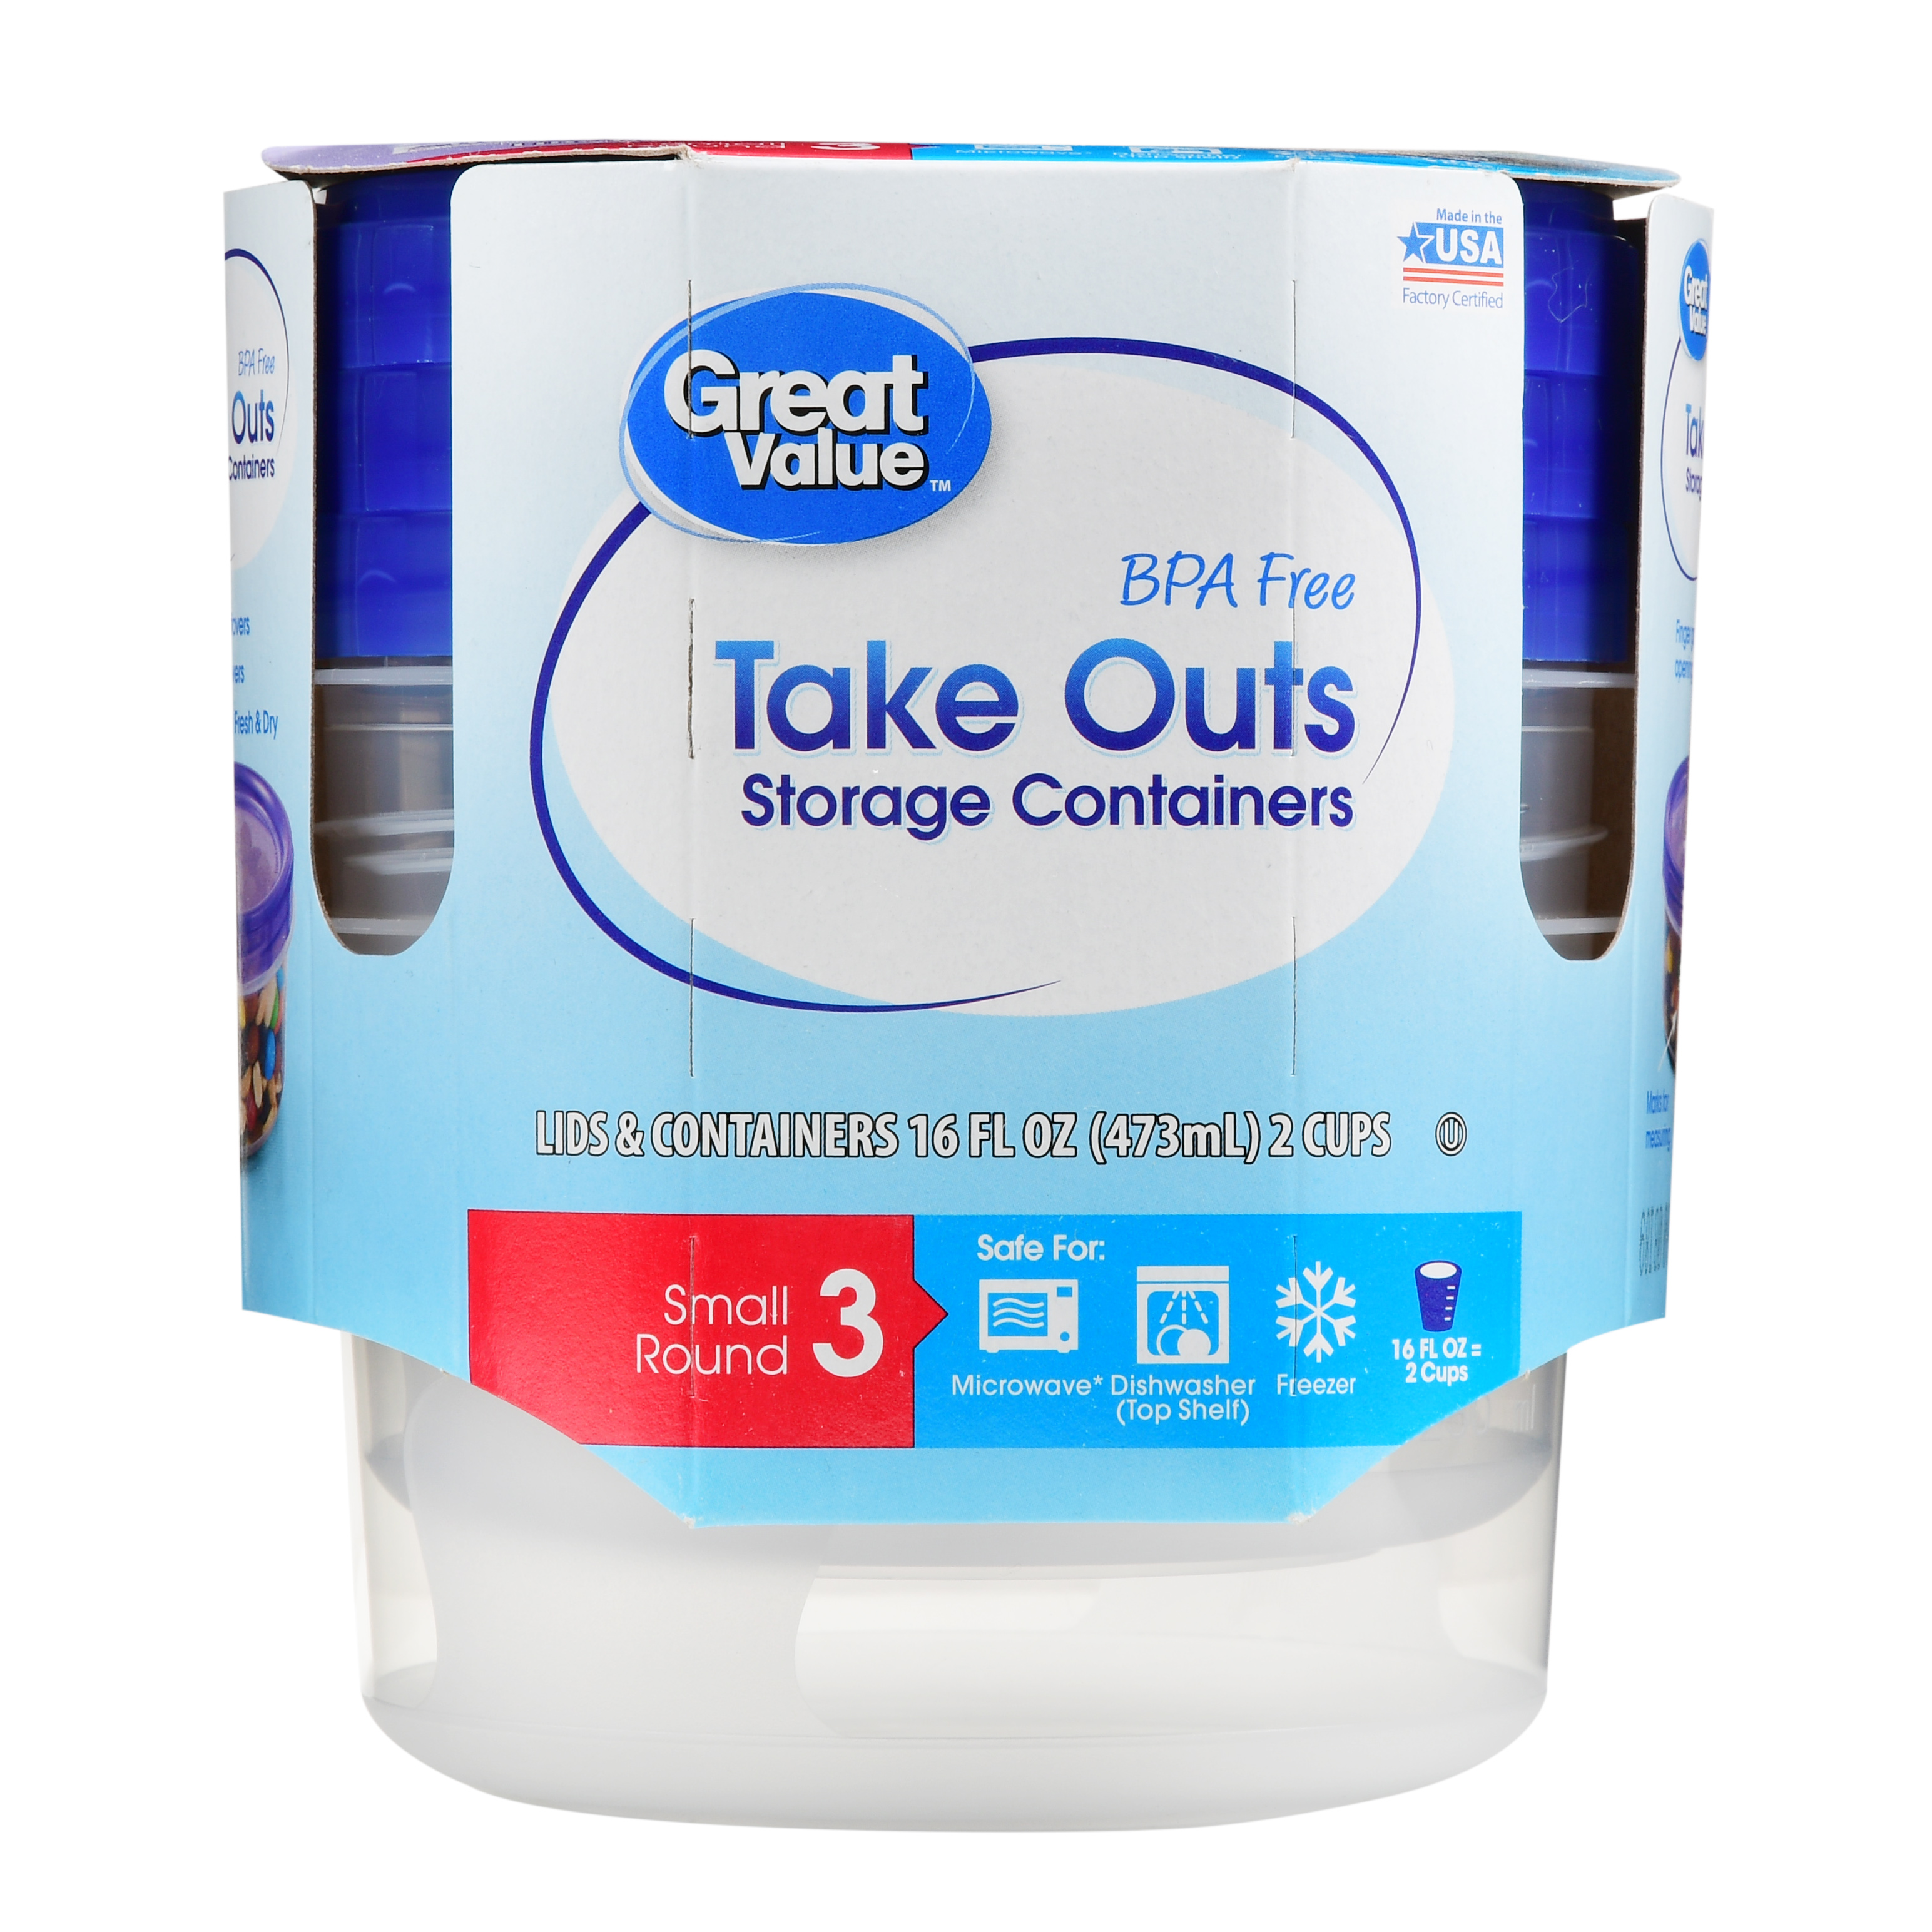 Great Value Take Outs Storage Containers BPA Free Small Round 3